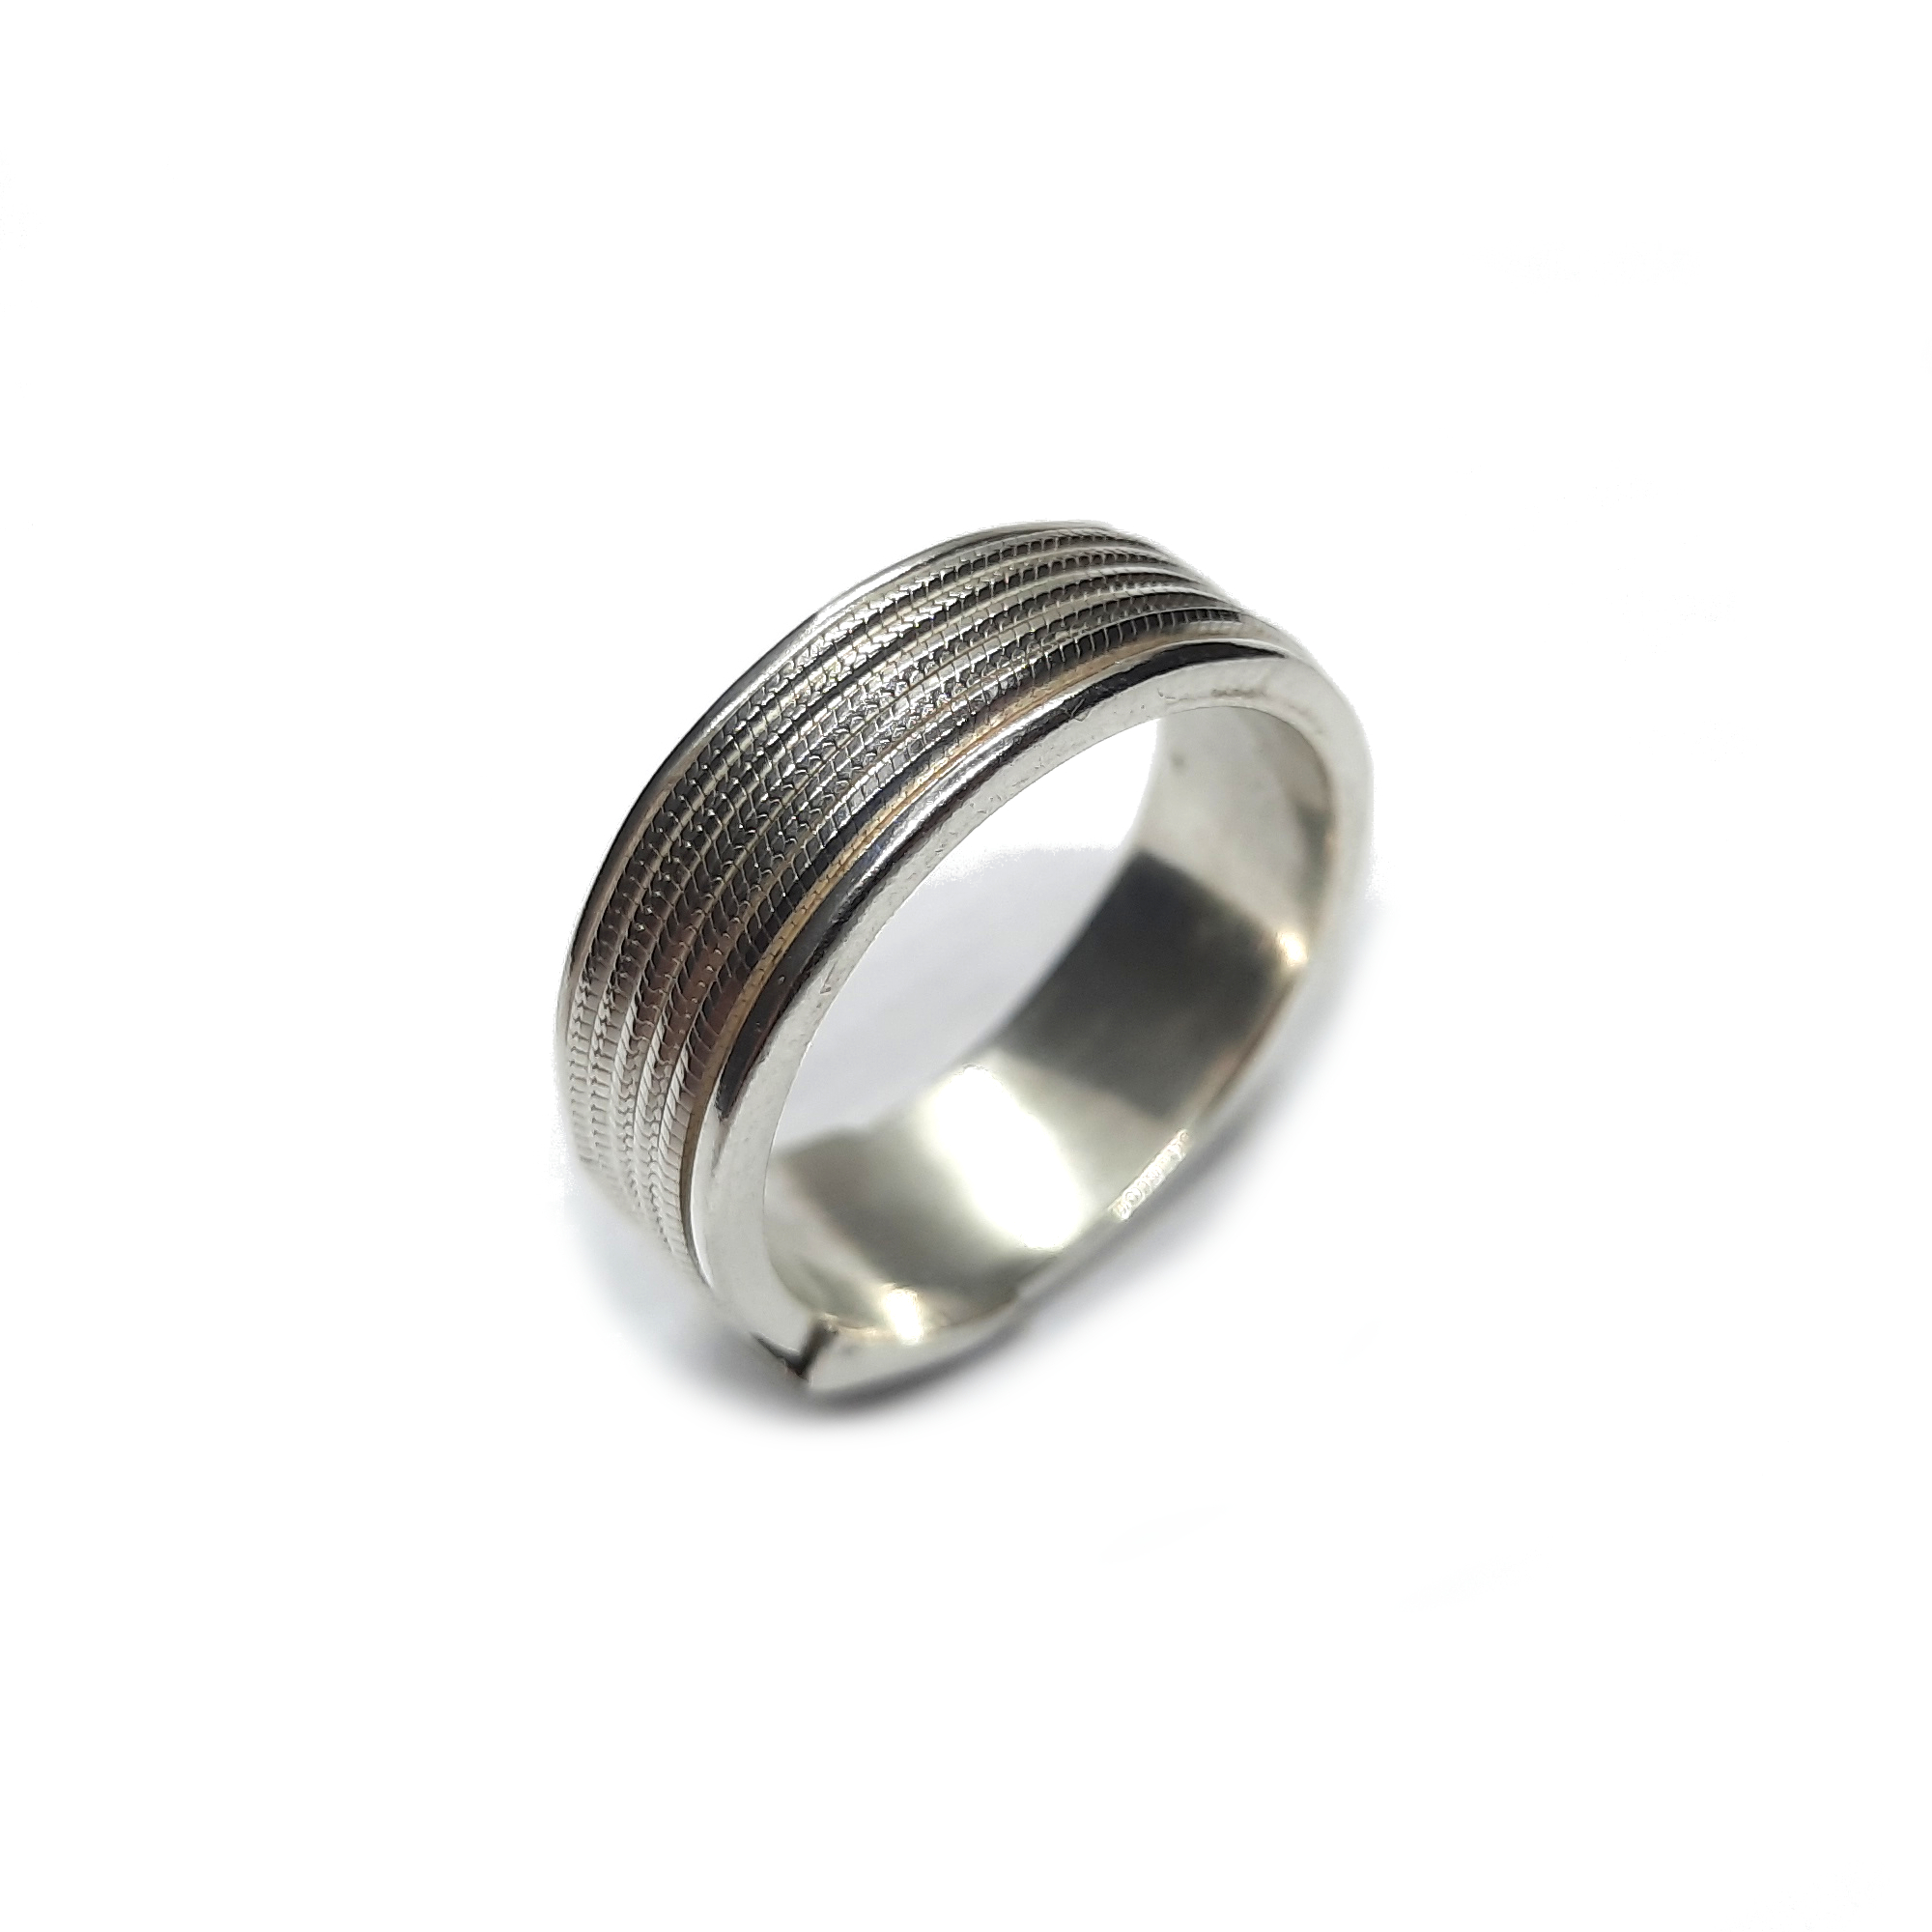 Silver ring - R002197